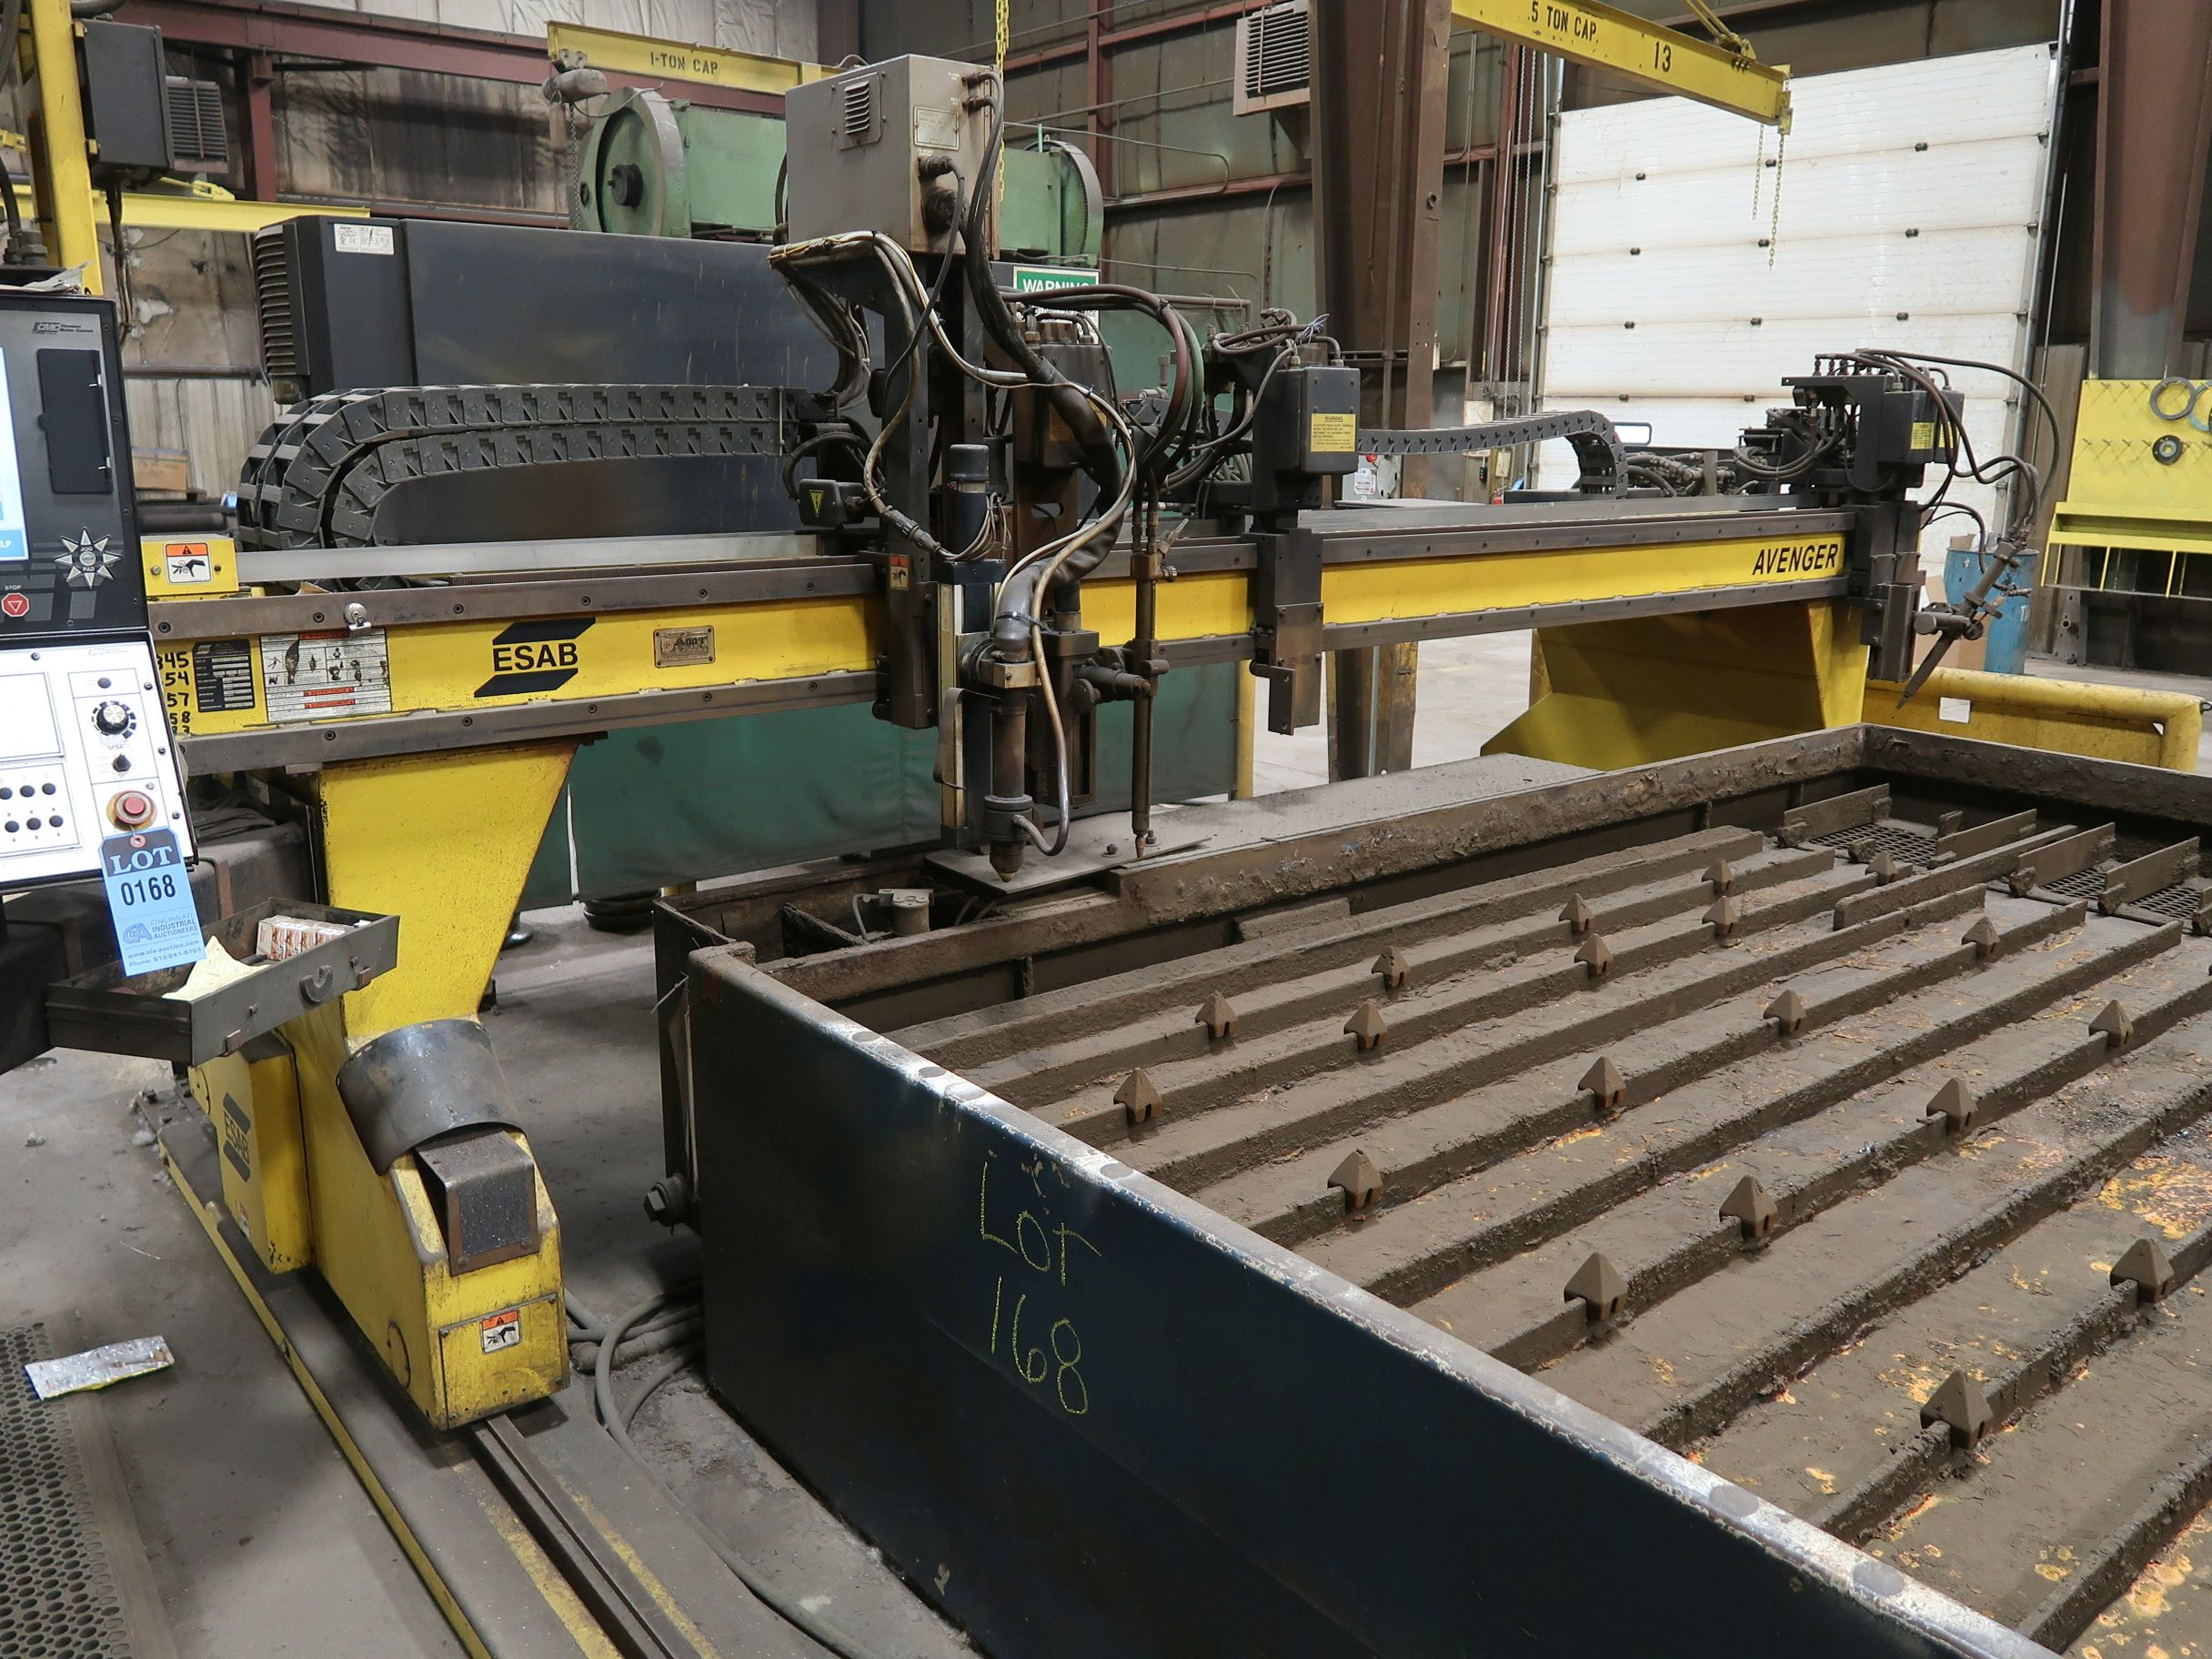 12' X 40' ESAB MODEL AVENGER 1-12 VISION PLASMA TABLE W/ BURNY 10 CONTROL; S/N 0560986386, UPDATED - Image 8 of 23